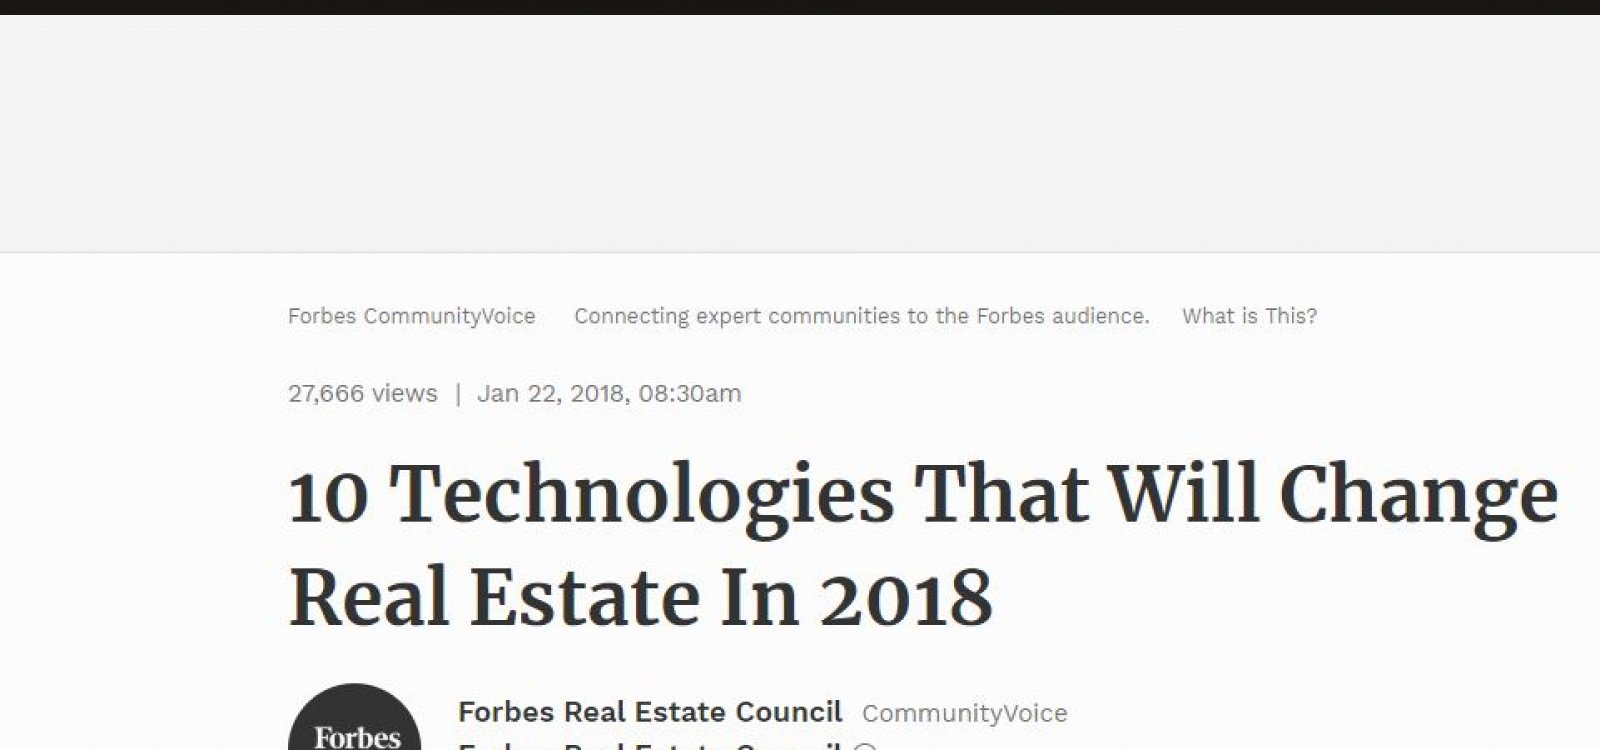 10 Technologies That Will Change Real Estate In 2018